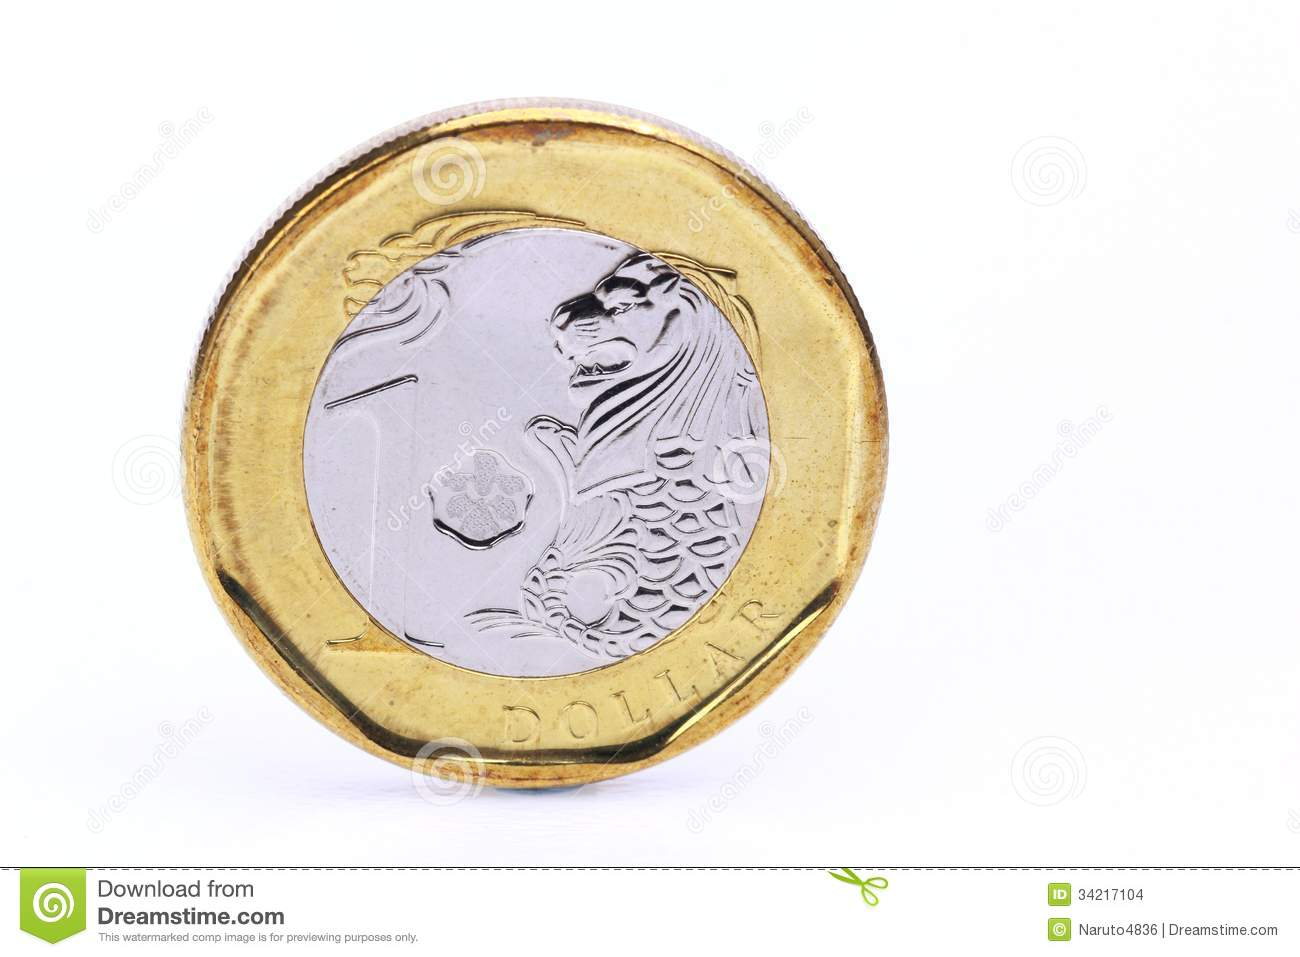 One dollar Singapore coin